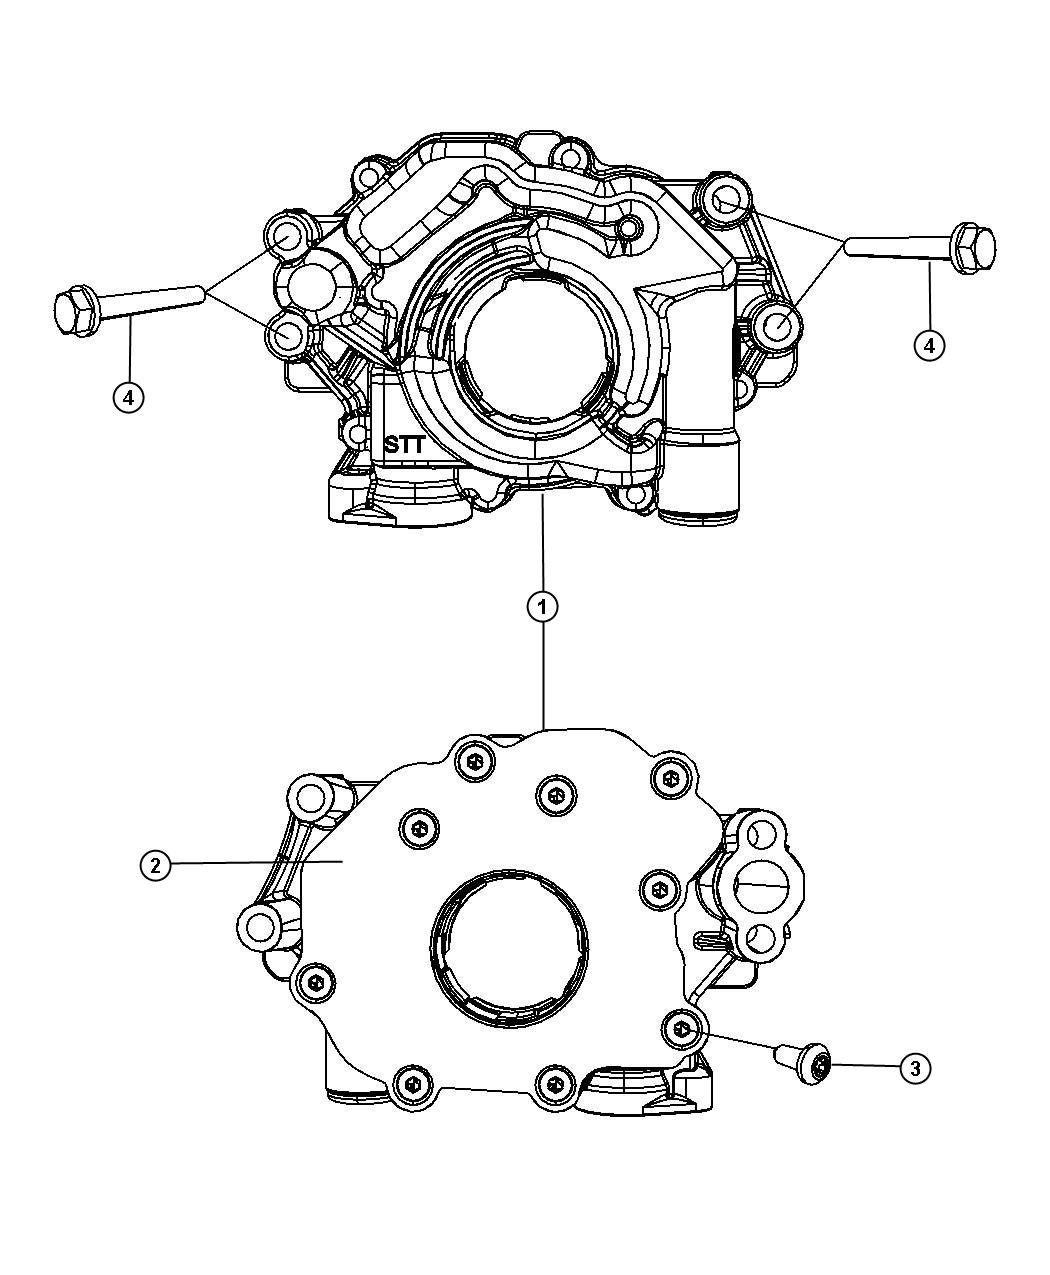 Jeep Commander Used for: BOLT AND CONED WASHER. Hex Head